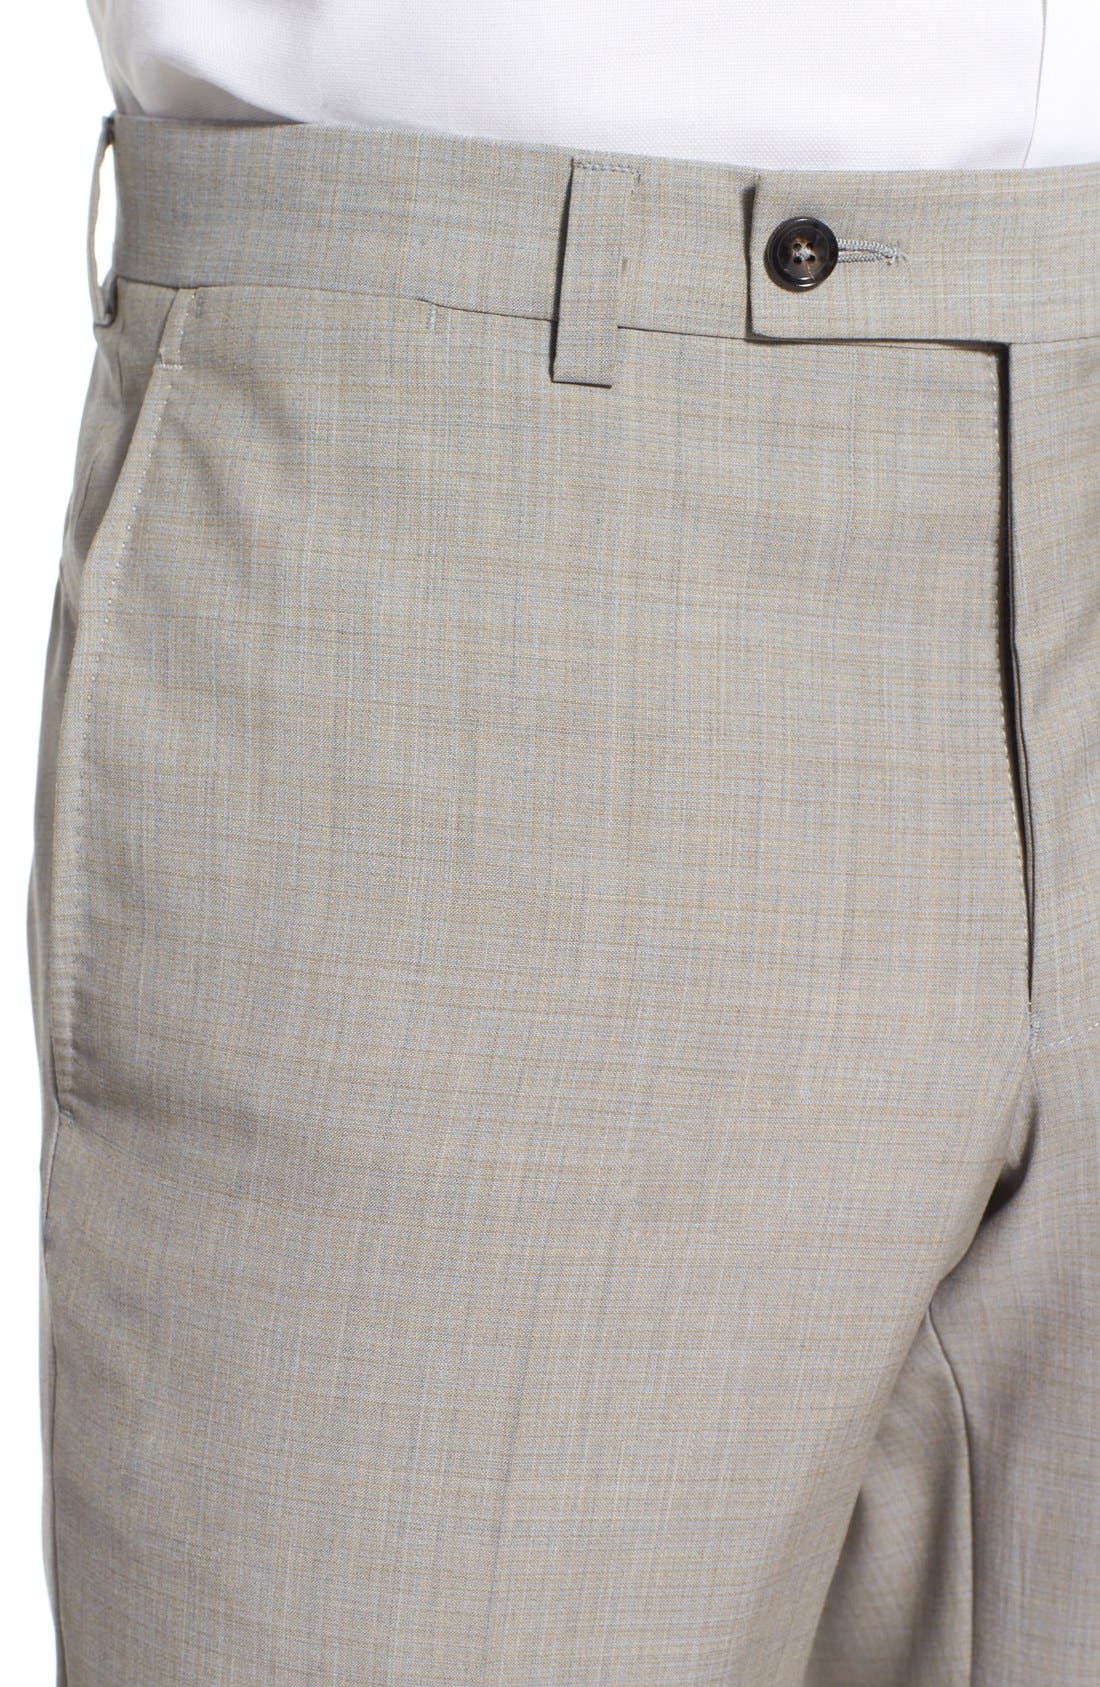 'Jefferson' Flat Front Solid Wool Trousers,                             Alternate thumbnail 5, color,                             270